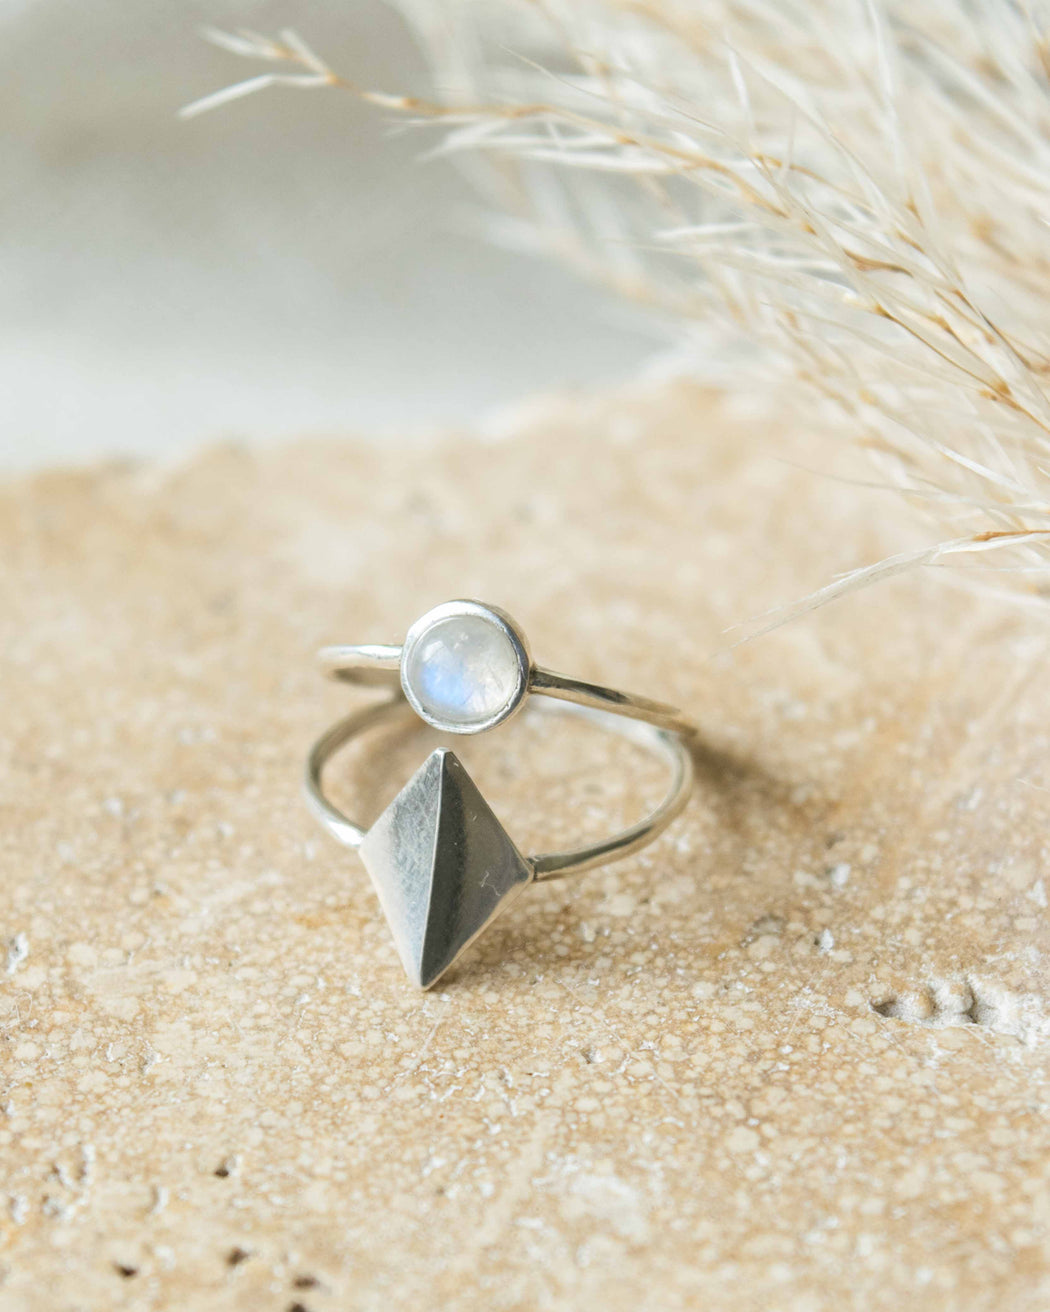 Lindsay Lewis - Dia Ring - Sterling/Moonstone